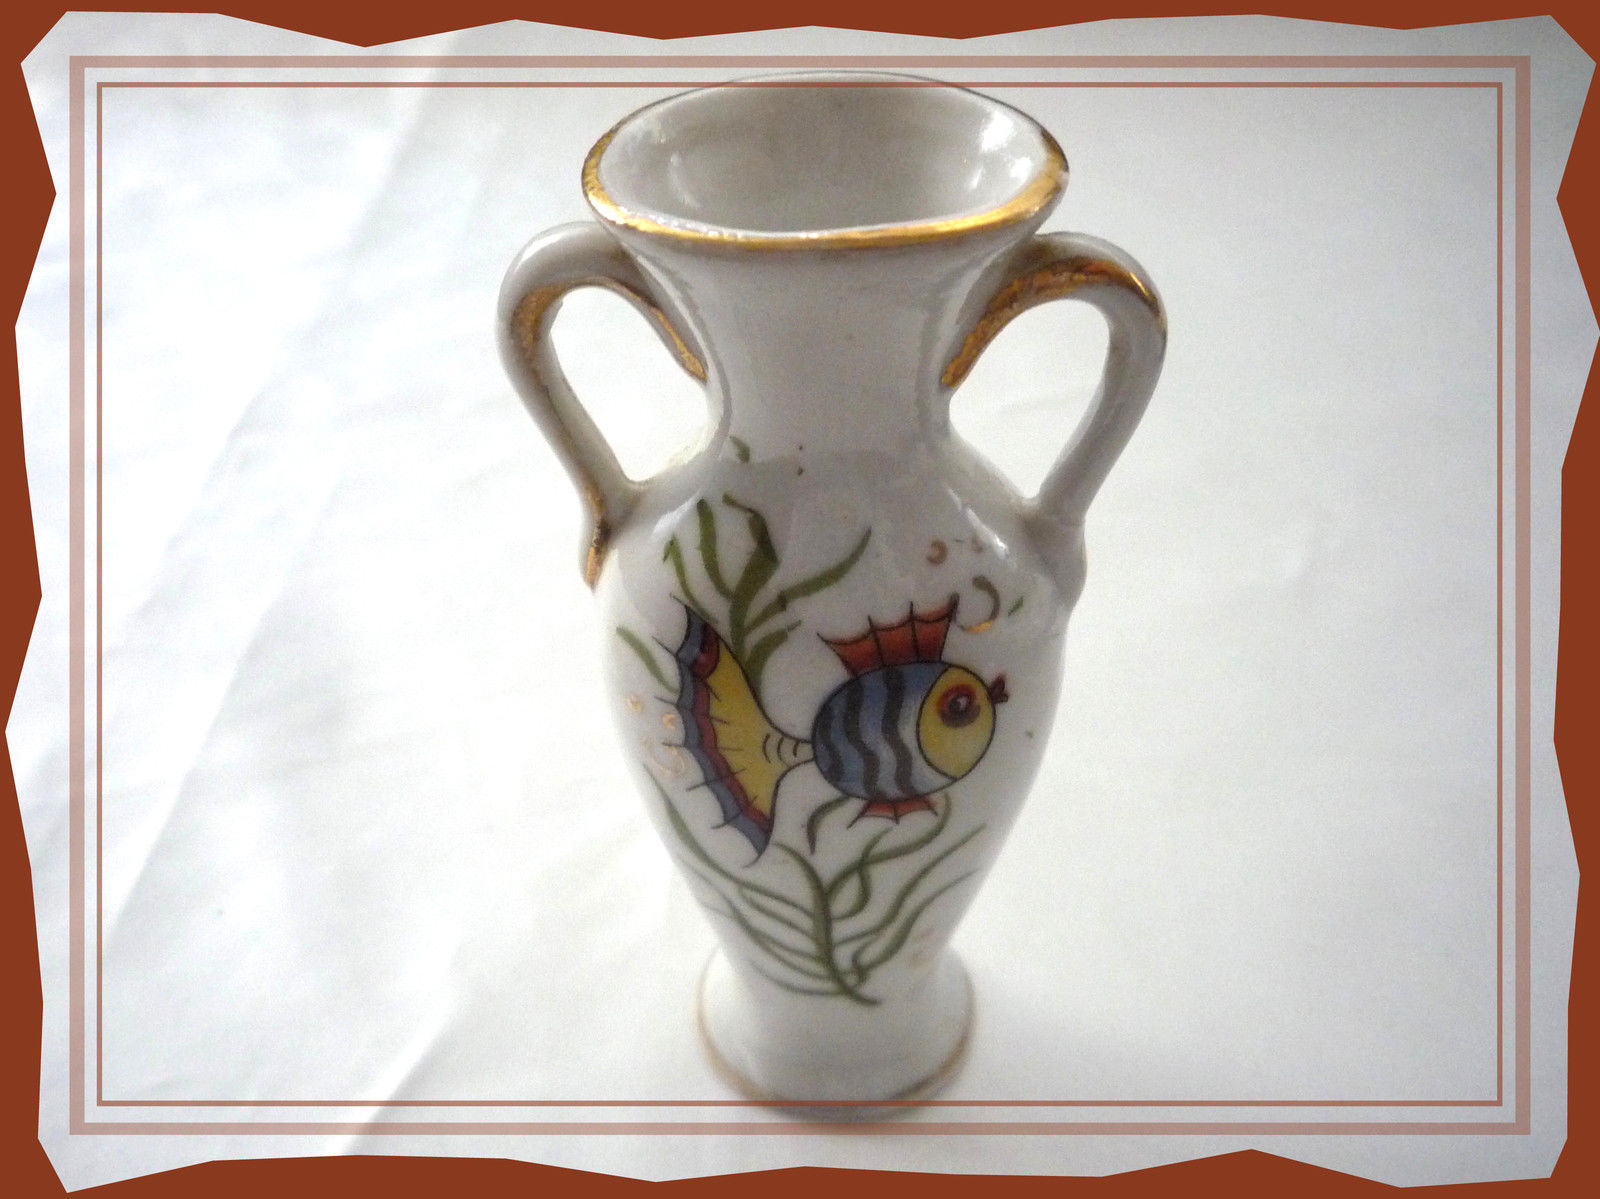 Primary image for White Fish Vase Made in Japan Miniature Vase with Handles, Trimmed in Gold